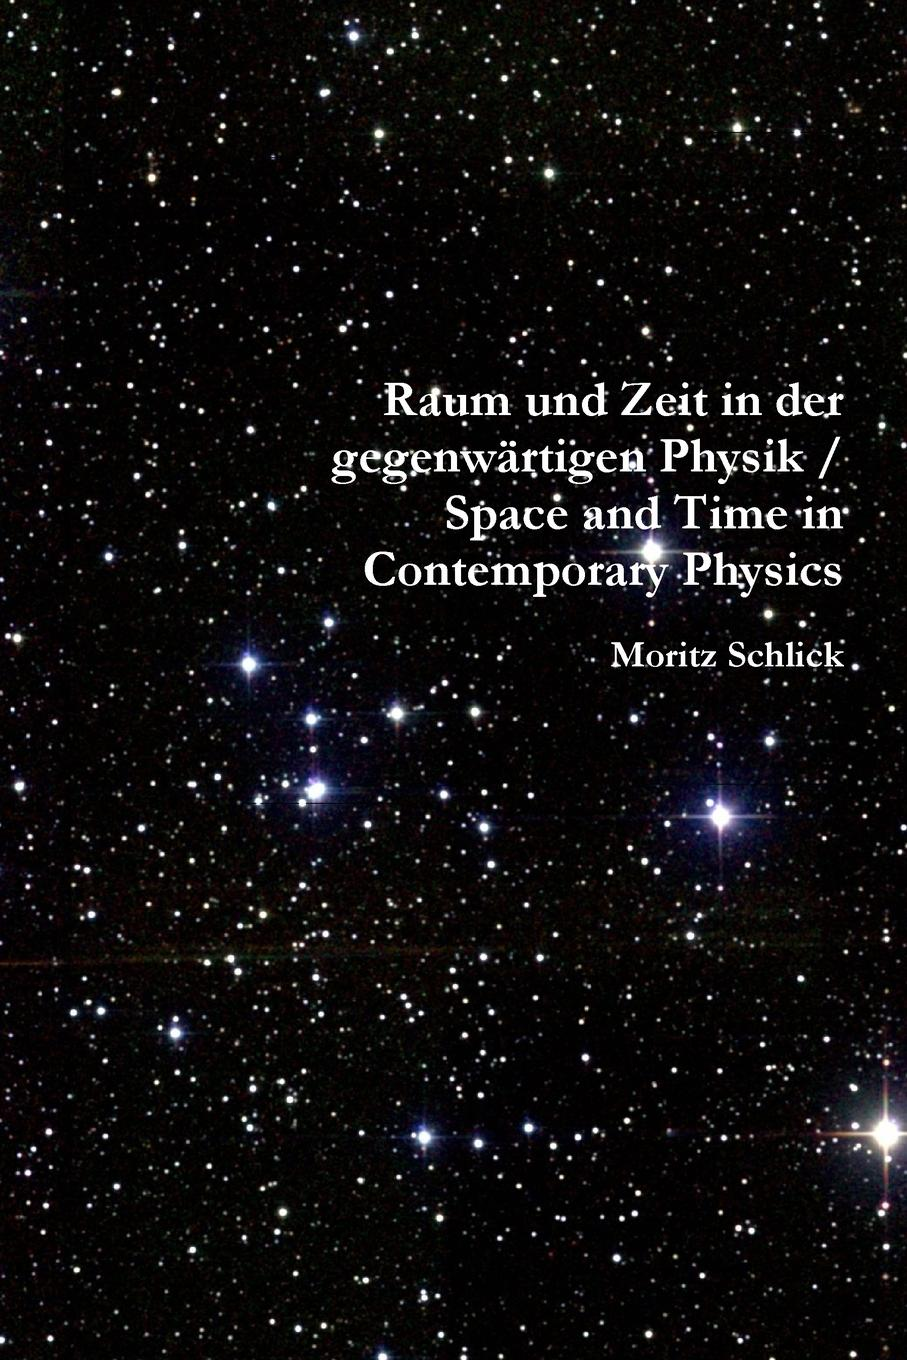 Moritz Schlick, Henry L. Brose (Translator), James Ward (Editor) Raum und Zeit in der gegenwartigen Physik / Space and Time in Contemporary Physics hermann weyl henry brose space time matter